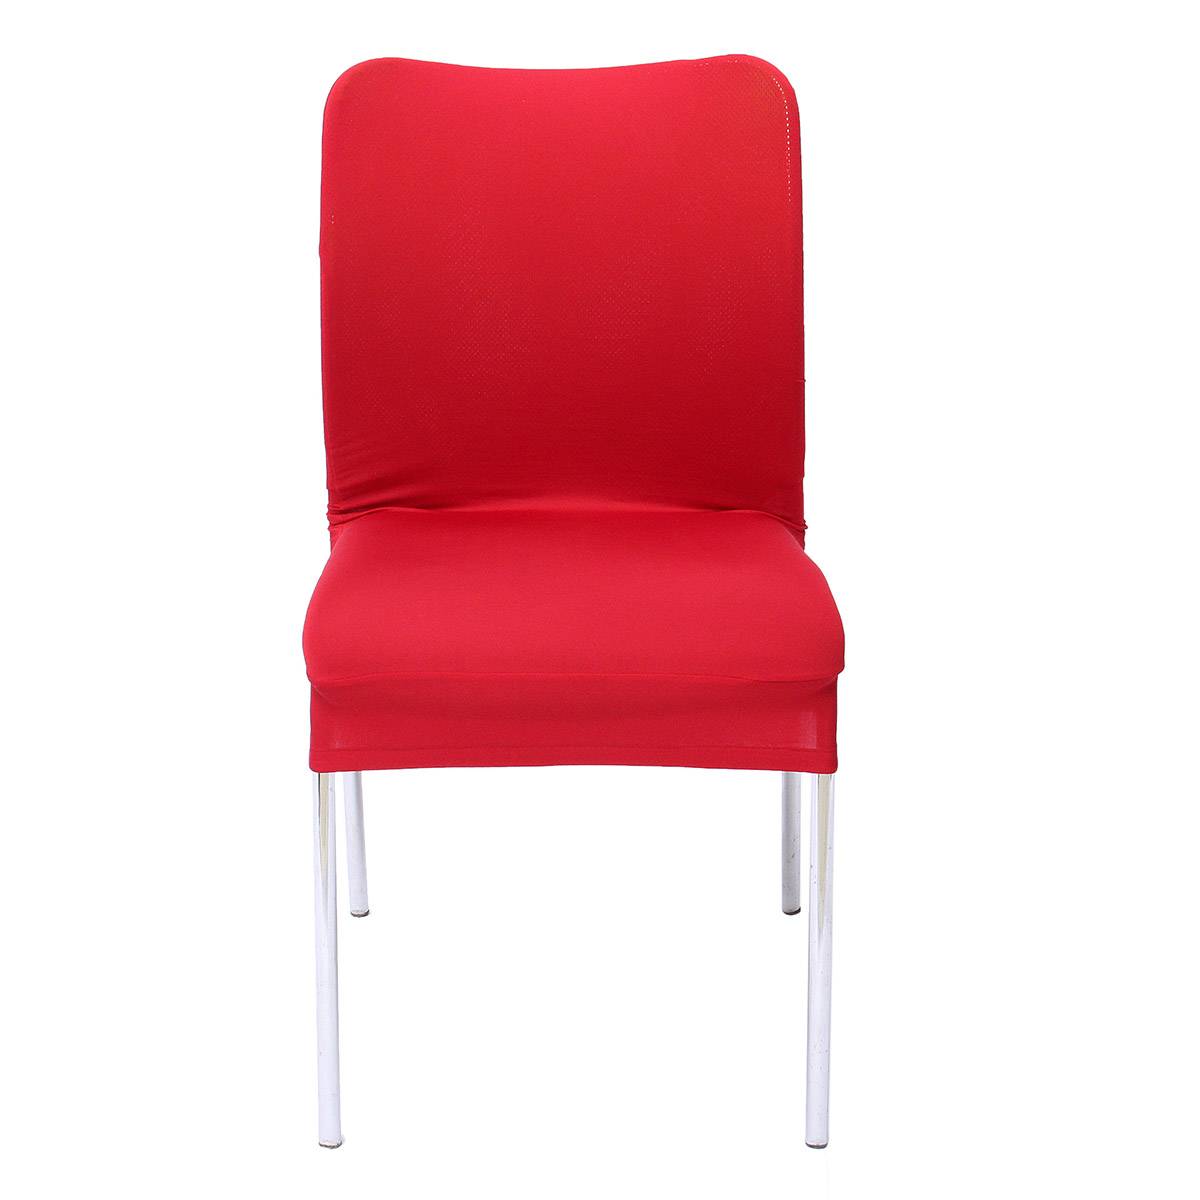 stretch soft stool seat chair cover removable dining room